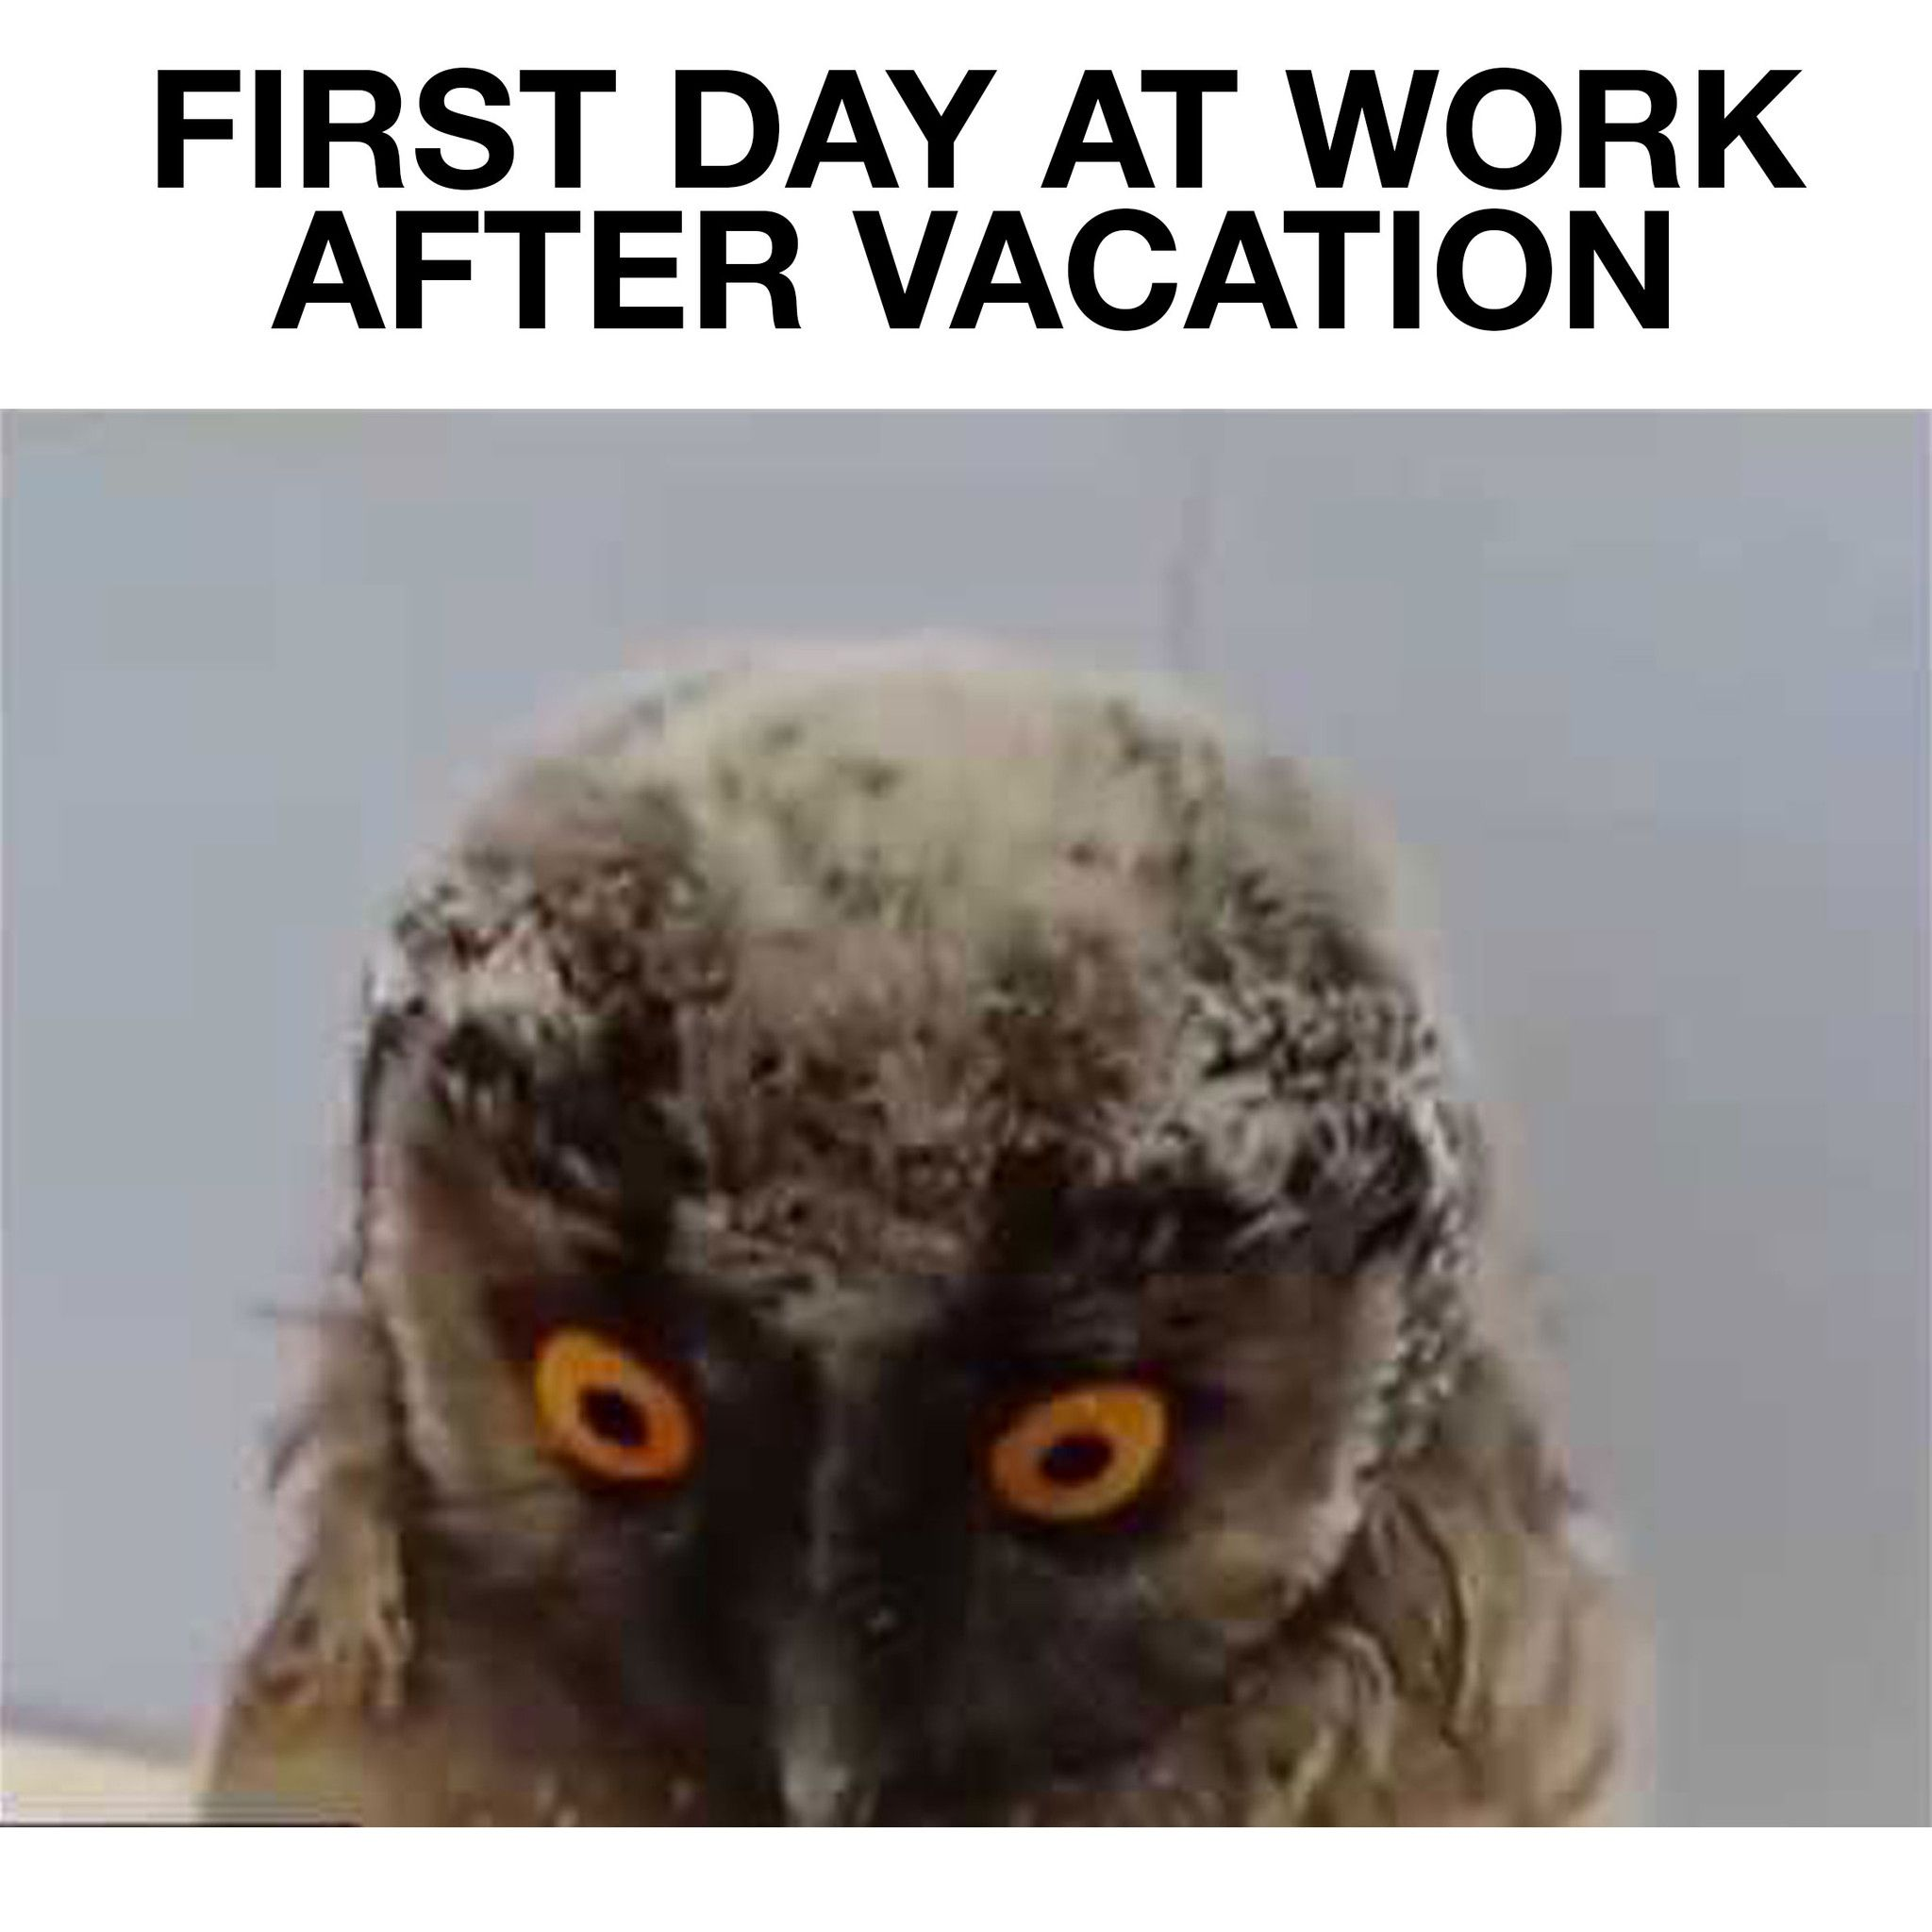 Back To Work Quotes After Vacation: First Day At Work After Vacation